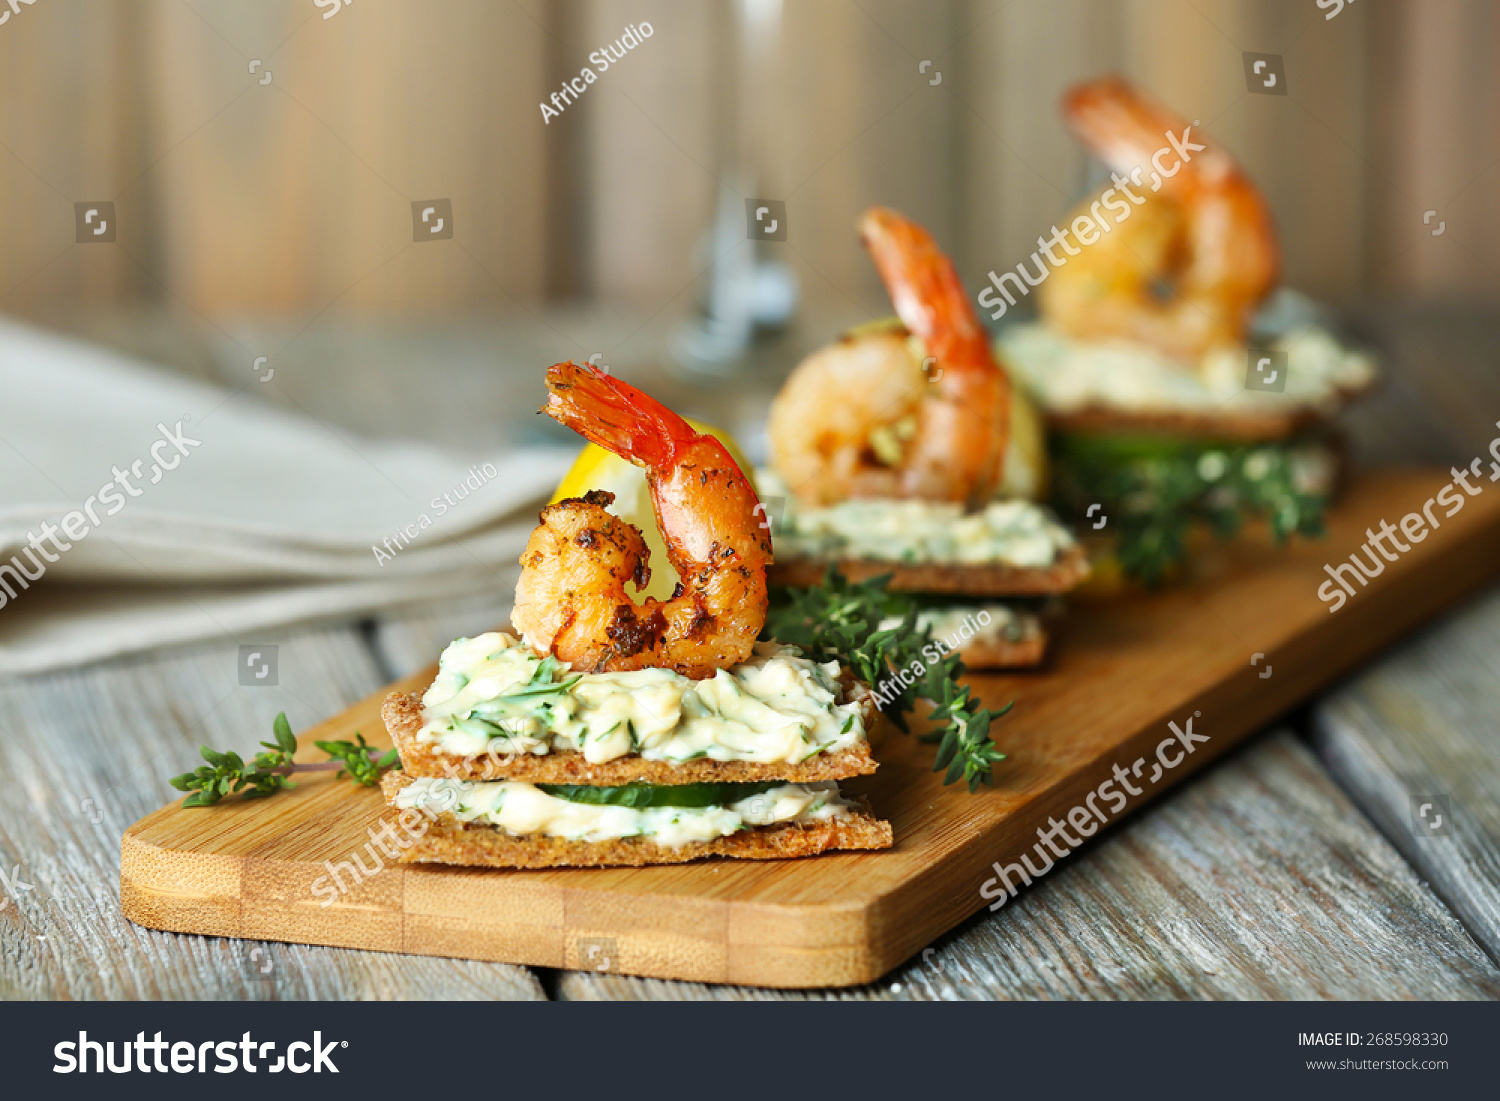 Appetizer canape with shrimp and cucumber on plate on for Appetizer canape